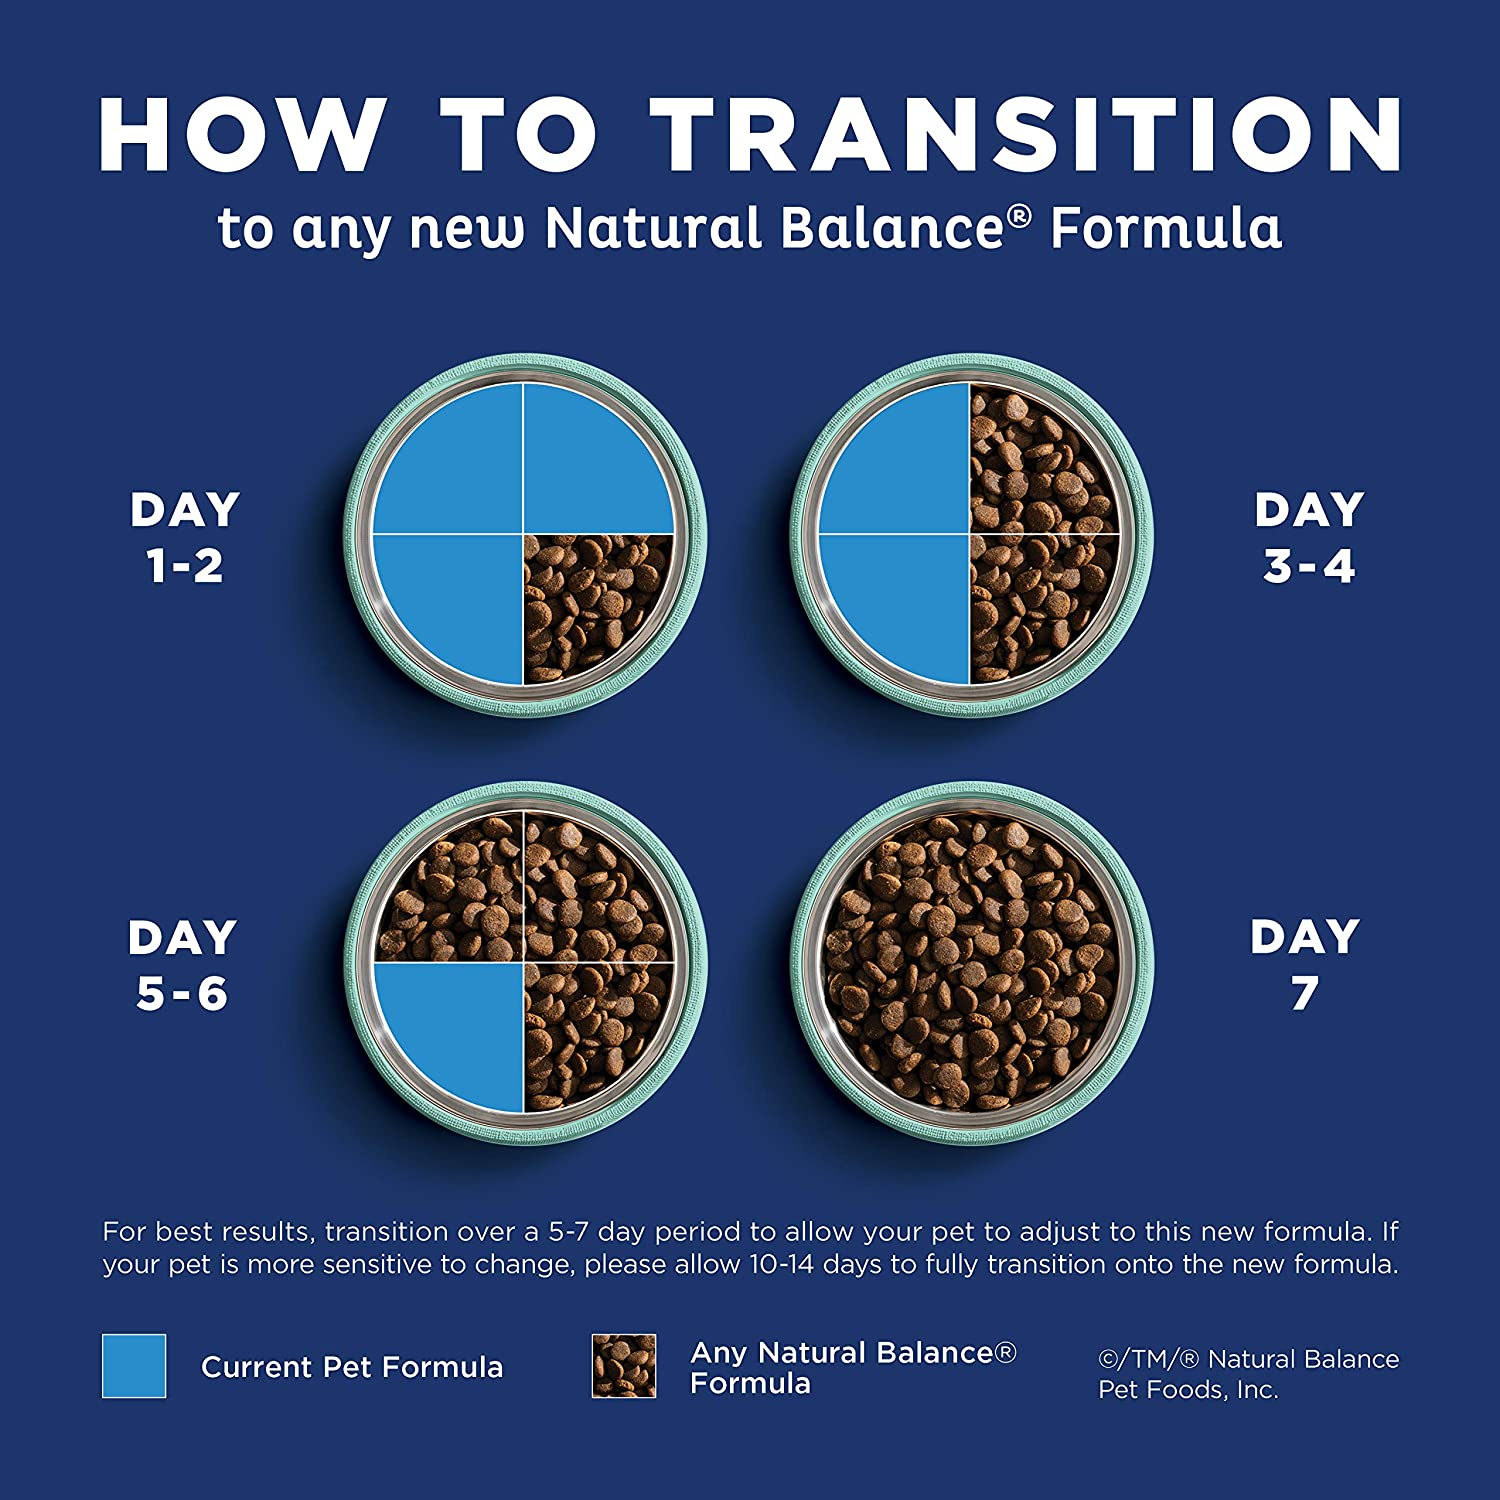 How to transition dogs to Natural Balance dog food